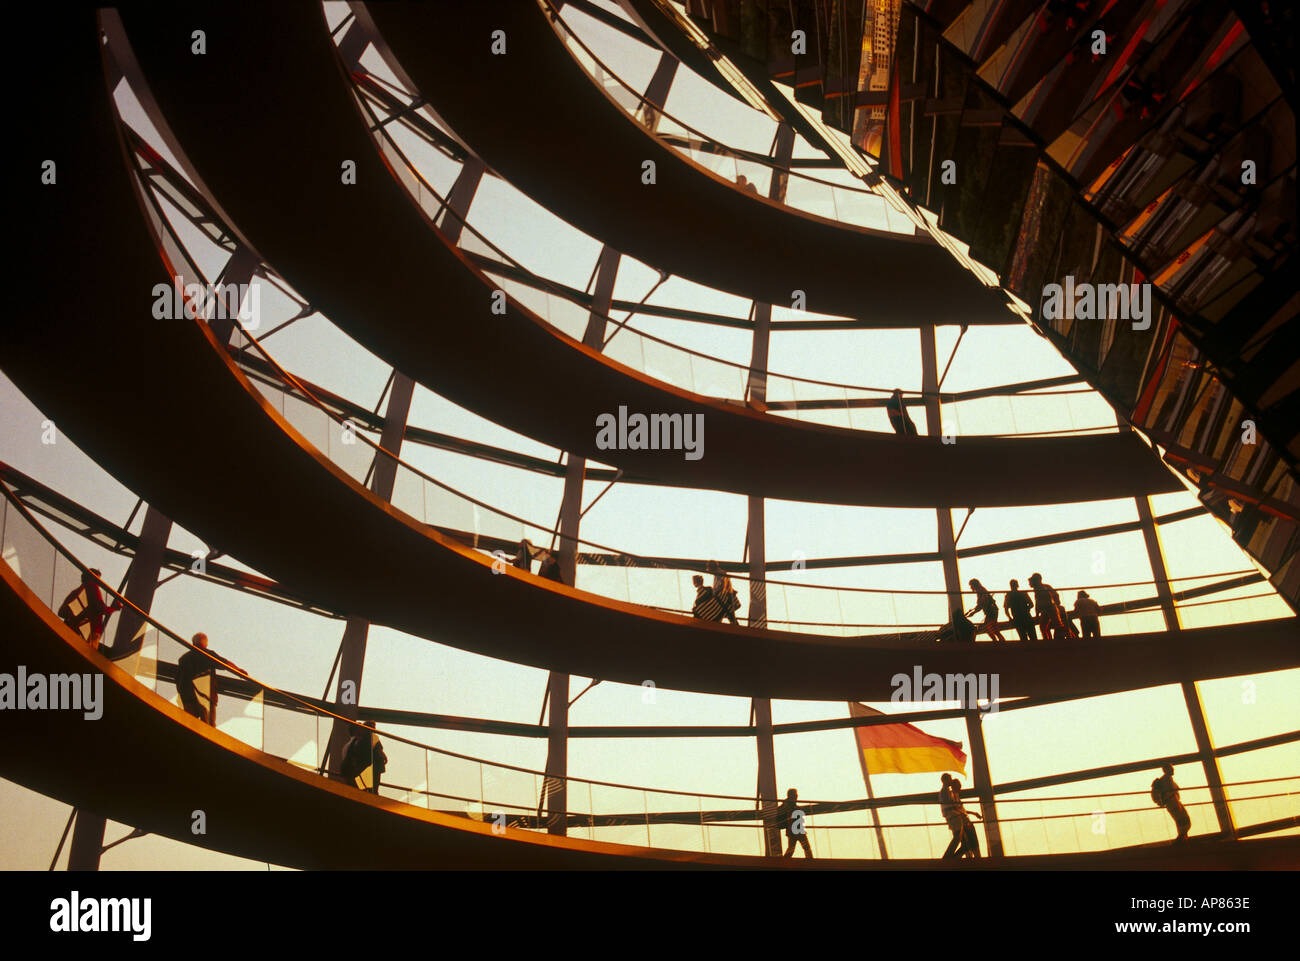 Low angle view of spiral staircase, Berlin, Germany, Europe - Stock Image